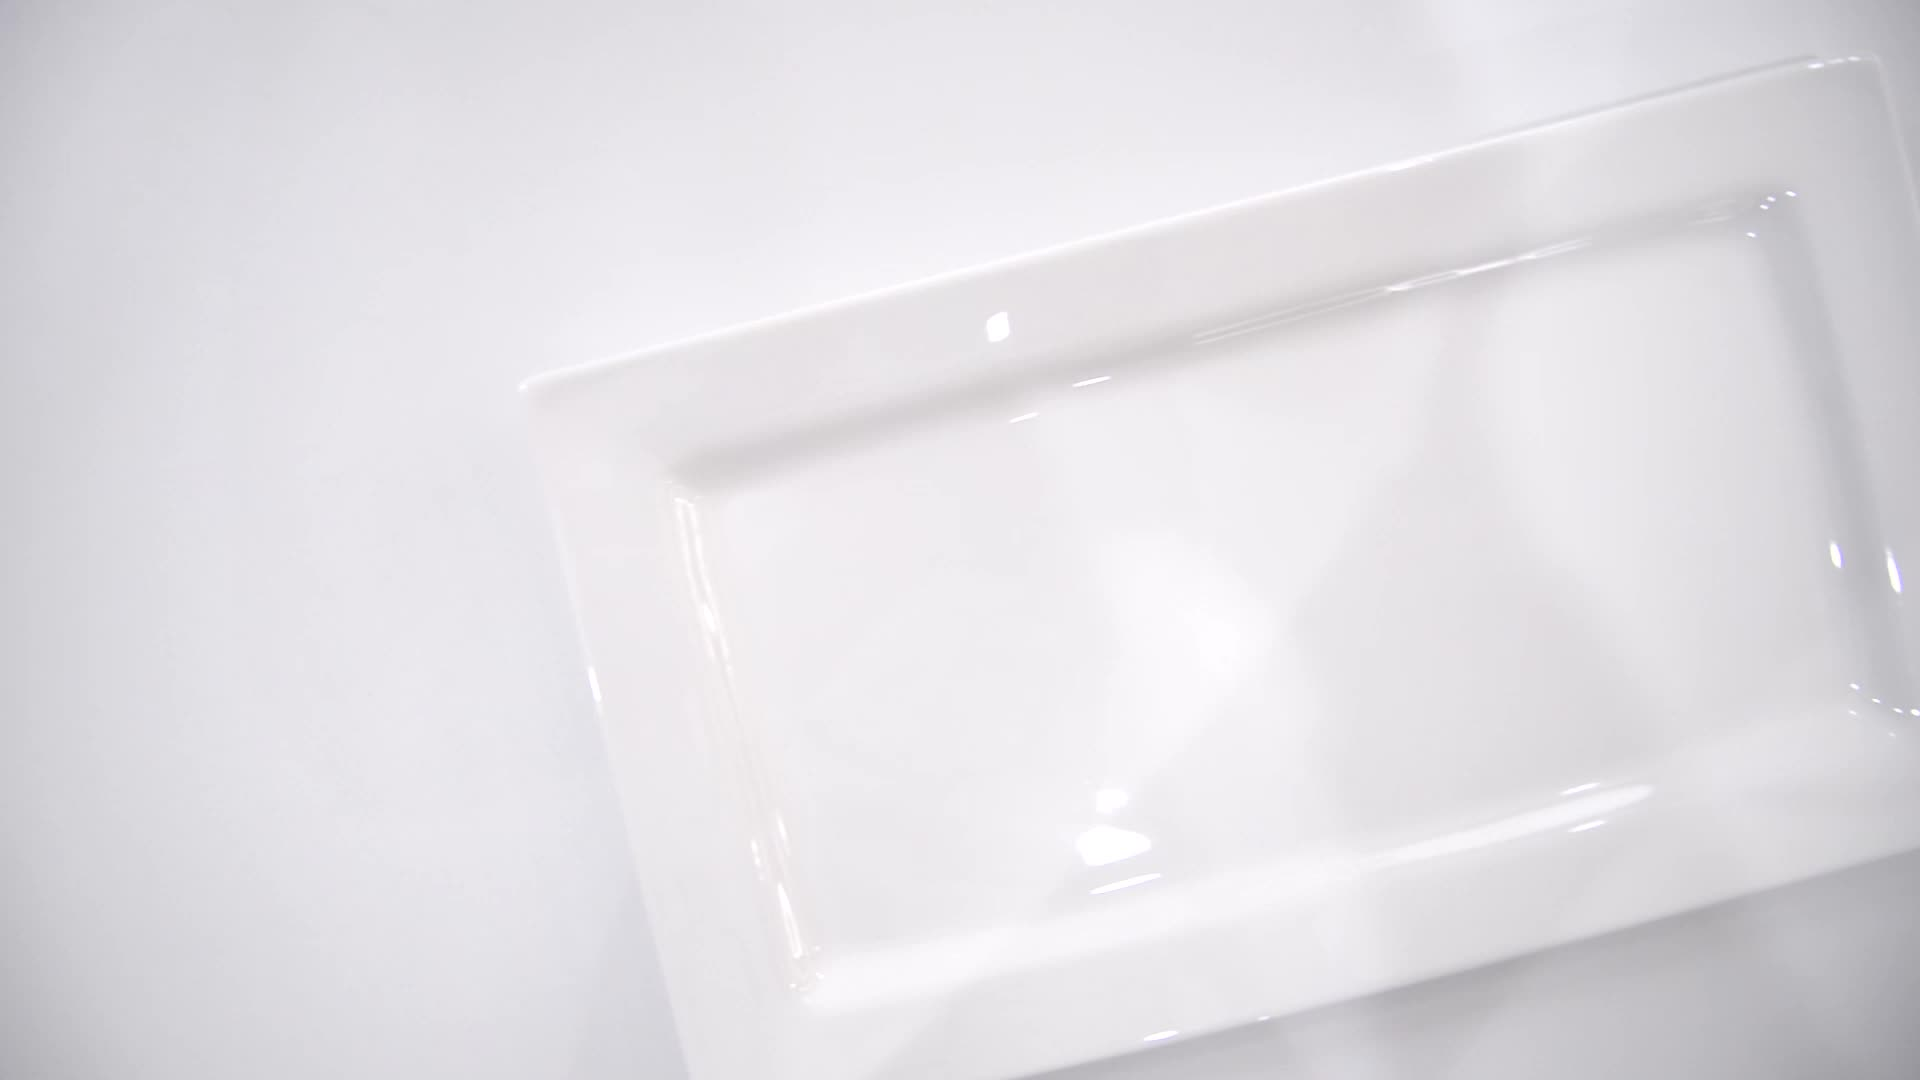 P&T Royal Ware porcelain rectangular plates white porcelain food plates for buffet